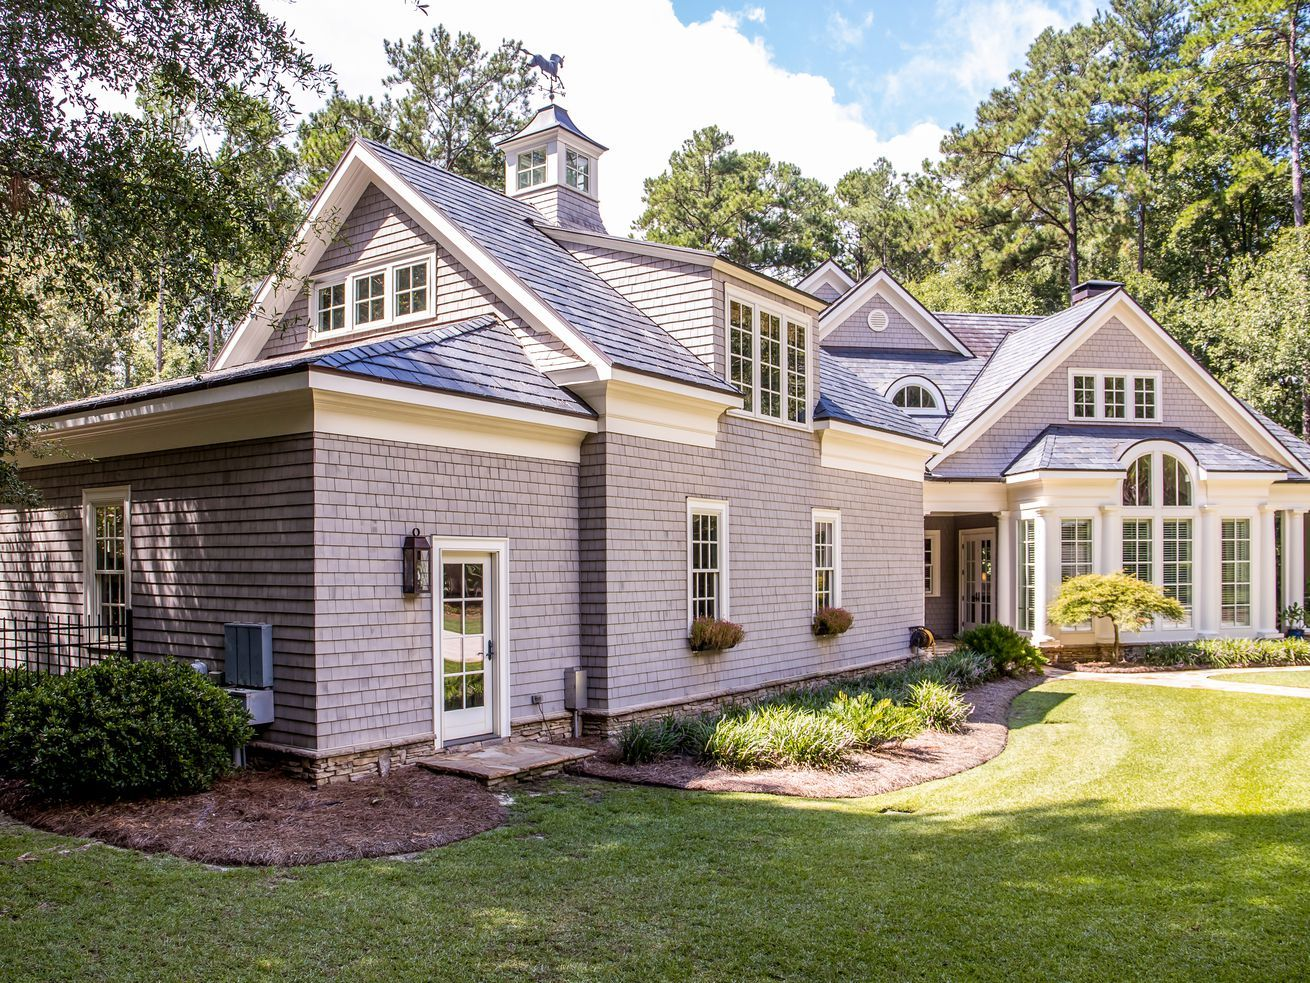 Complete Protection Home Warranty Review 2020 In 2020 Home Warranty Best Home Warranty Cape Cod Style House